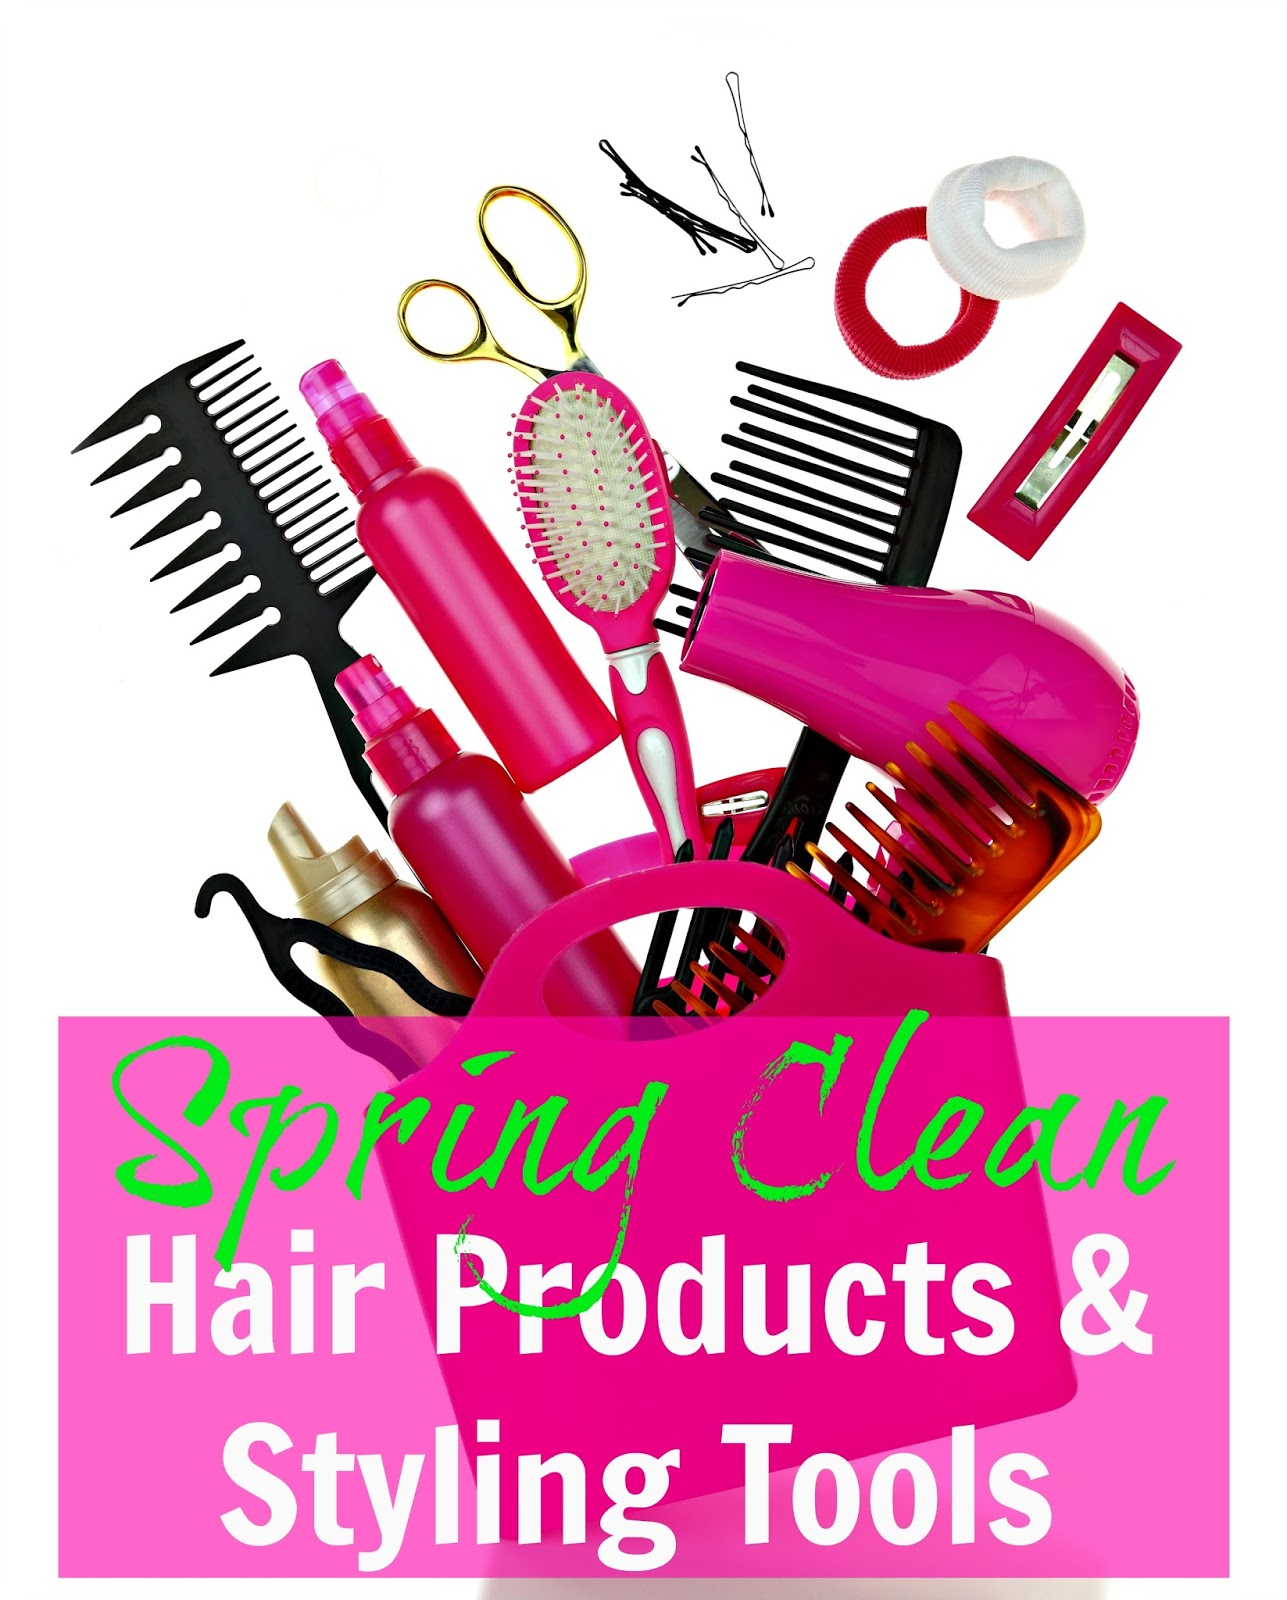 How can you have clean hair if you don't clean your hair products?! Spring is a great time to see what needs to be ditched, revamped or cleaned.